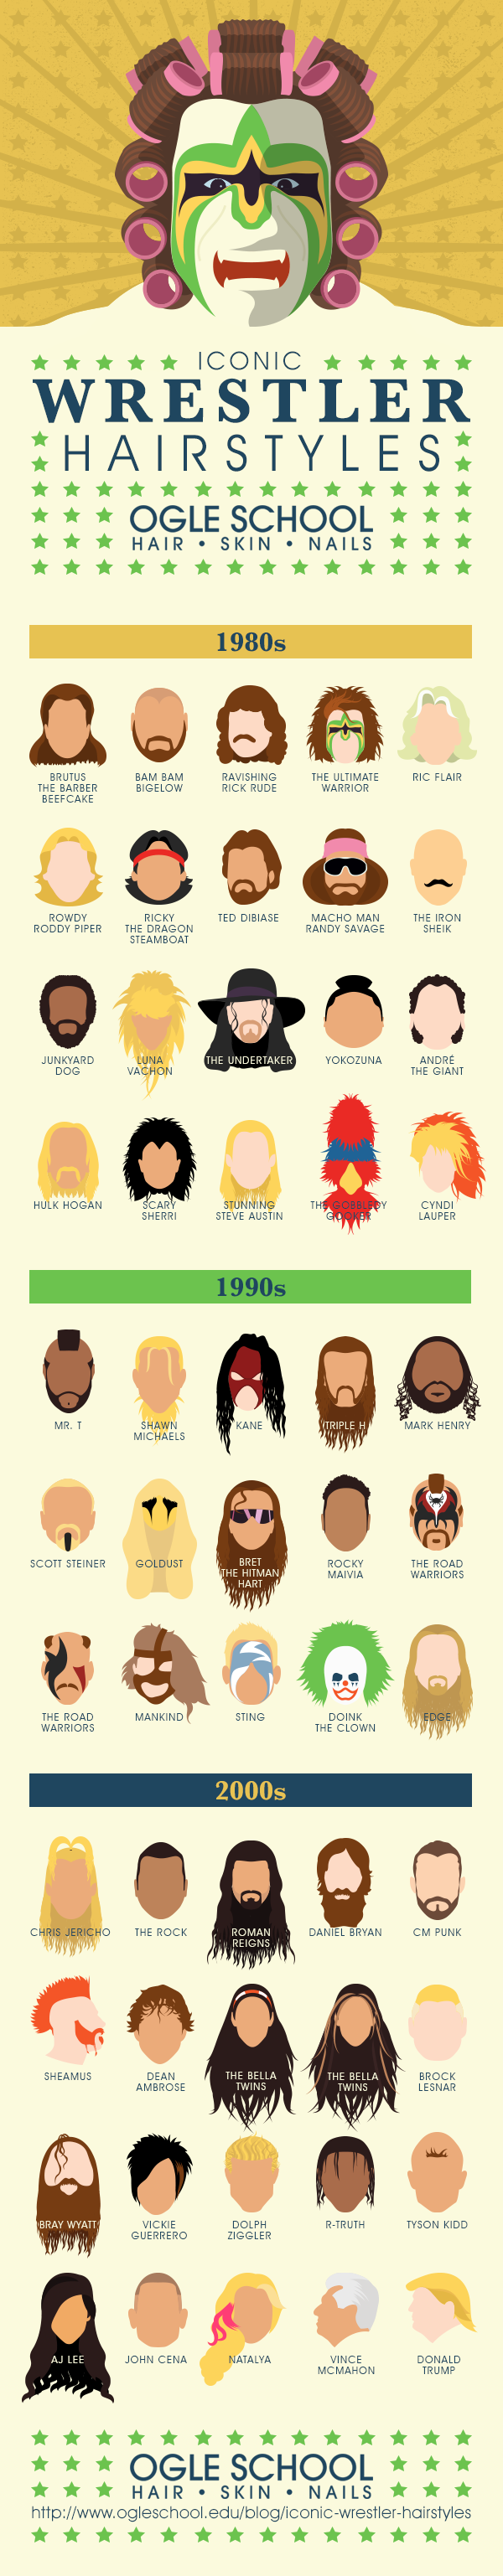 Iconic Wrestler's Hairstyles